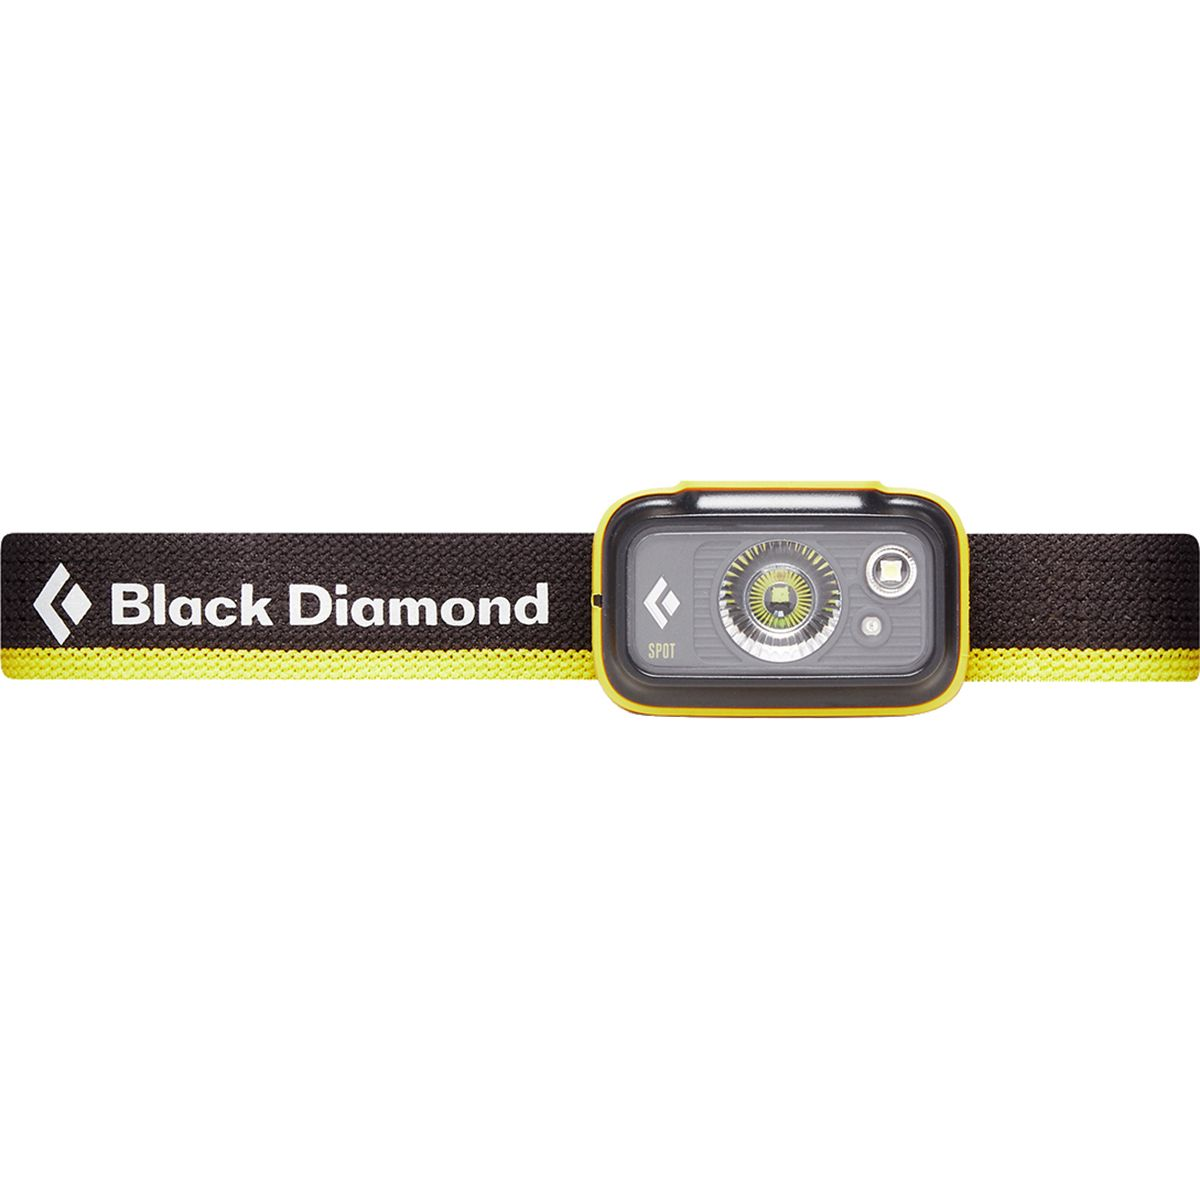 Black Diamond lys